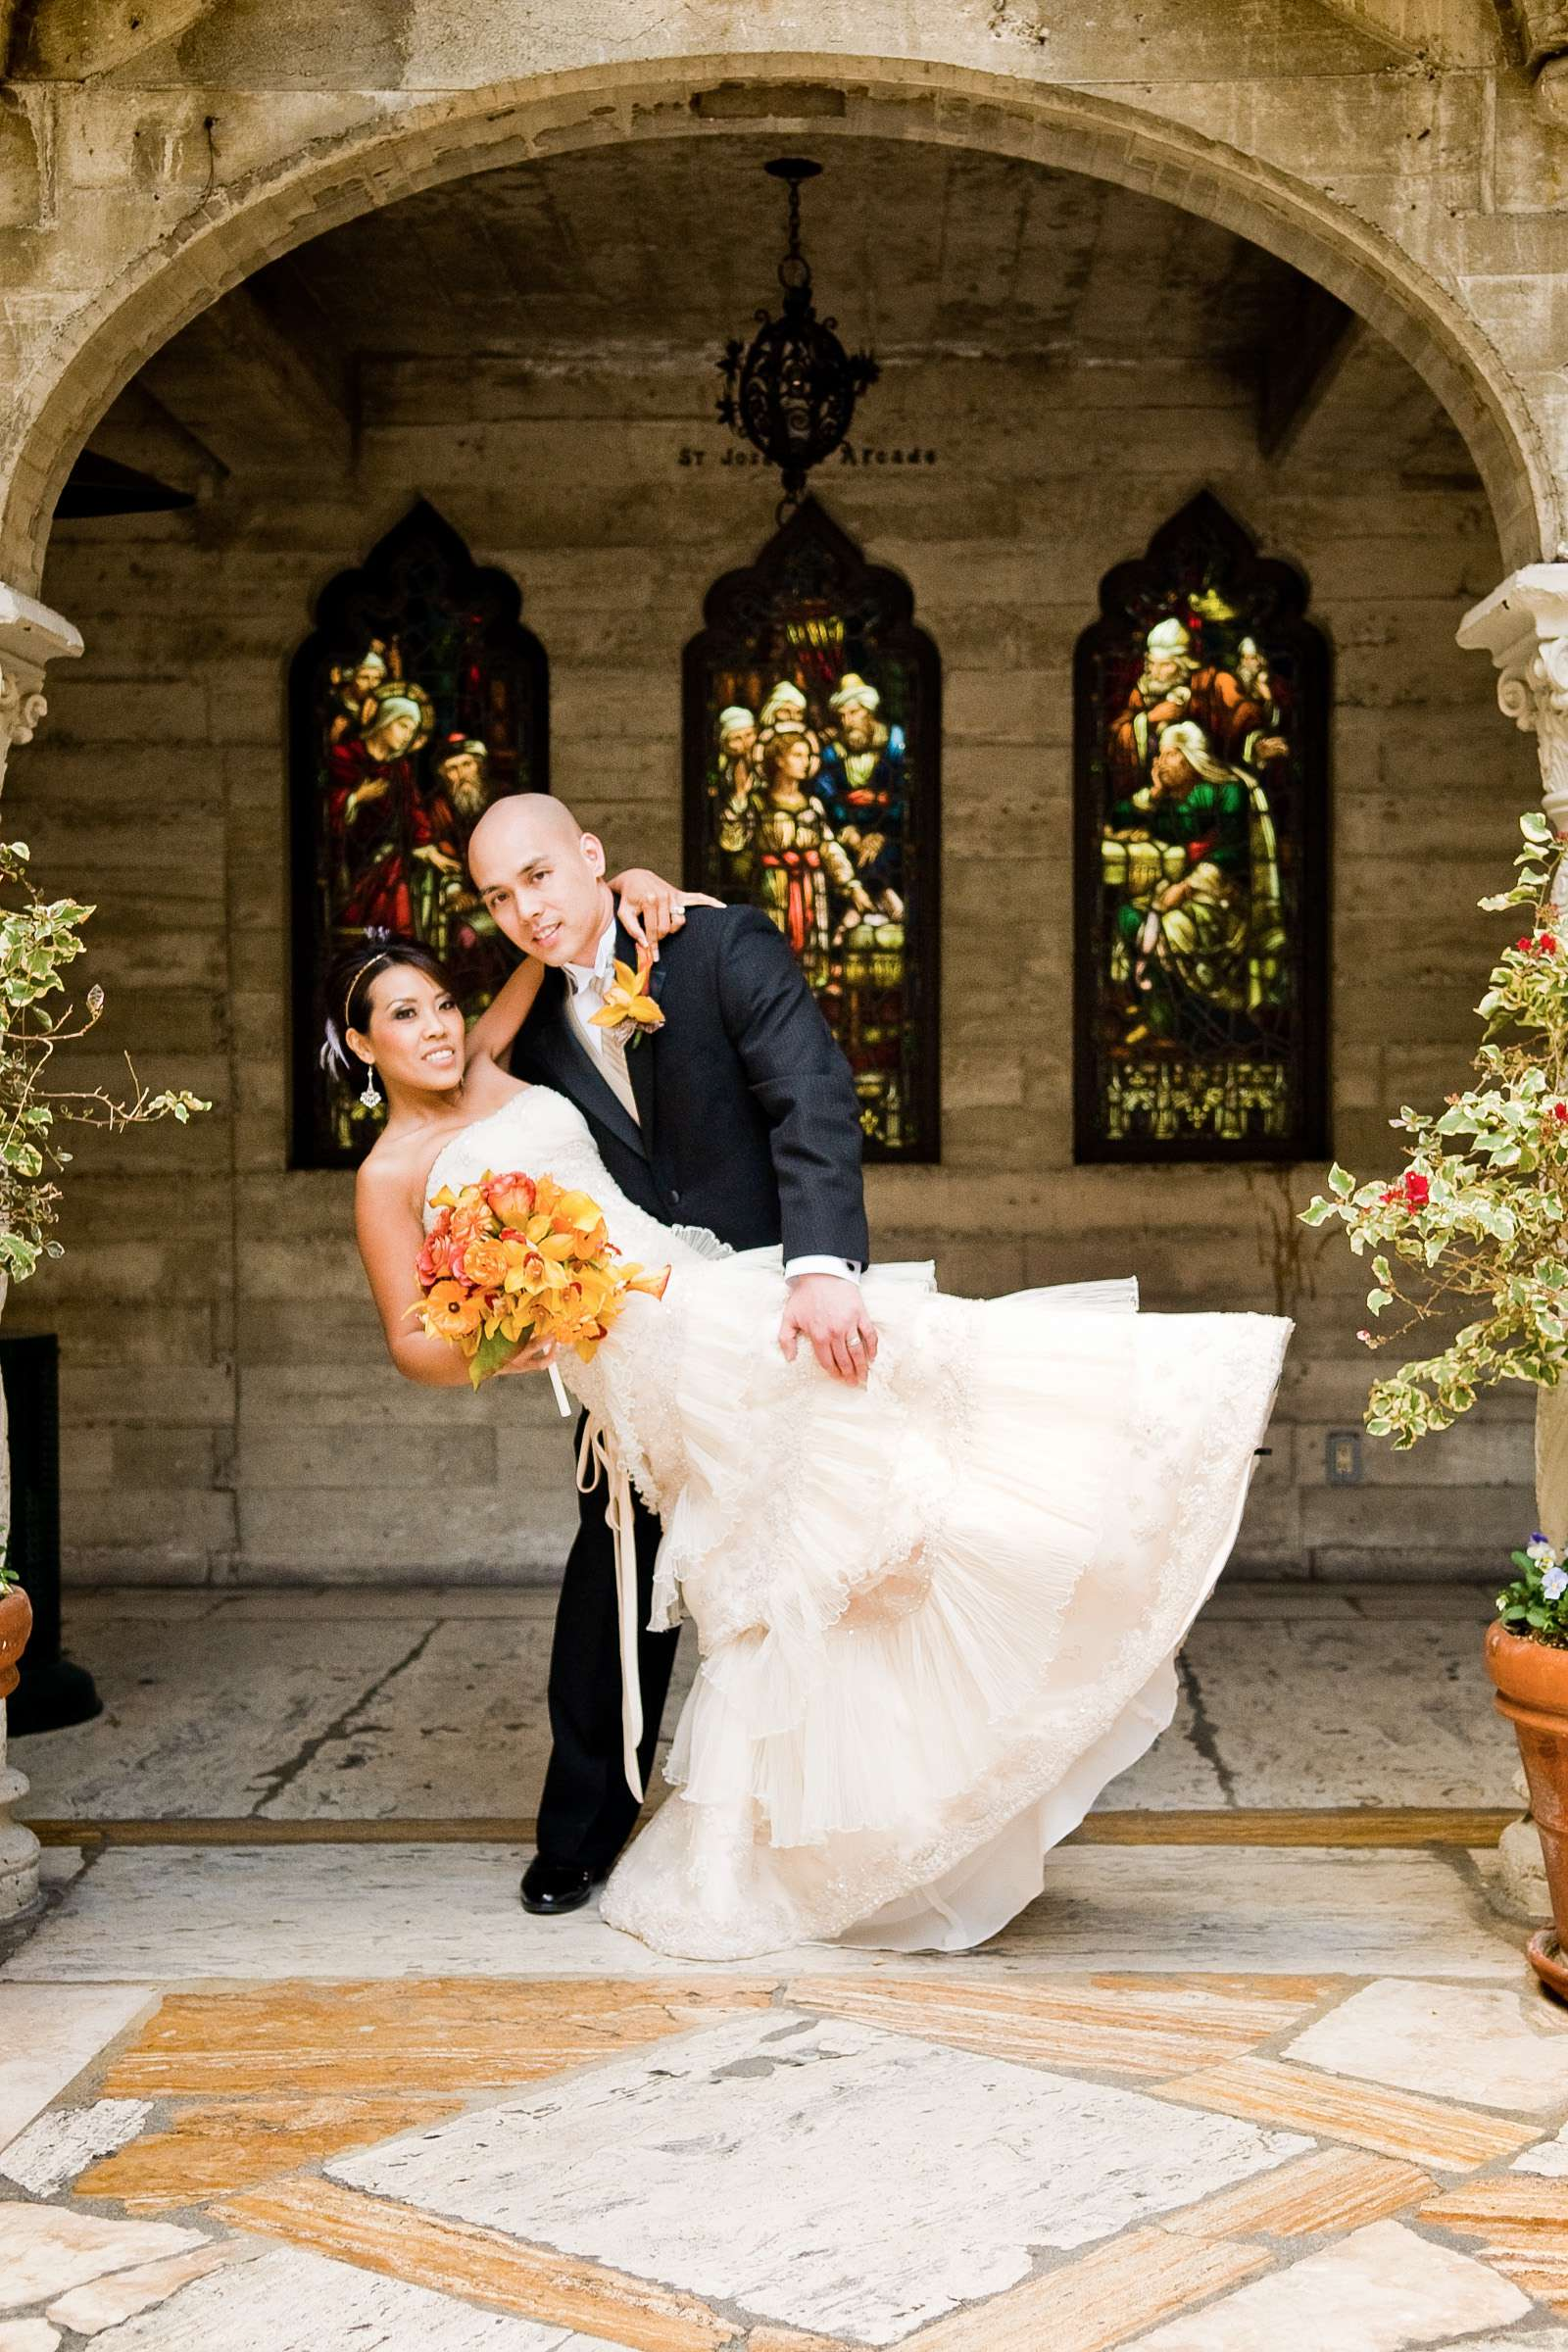 The Mission Inn-Riverside Wedding, Theresa and Francis Wedding Photo #301547 by True Photography